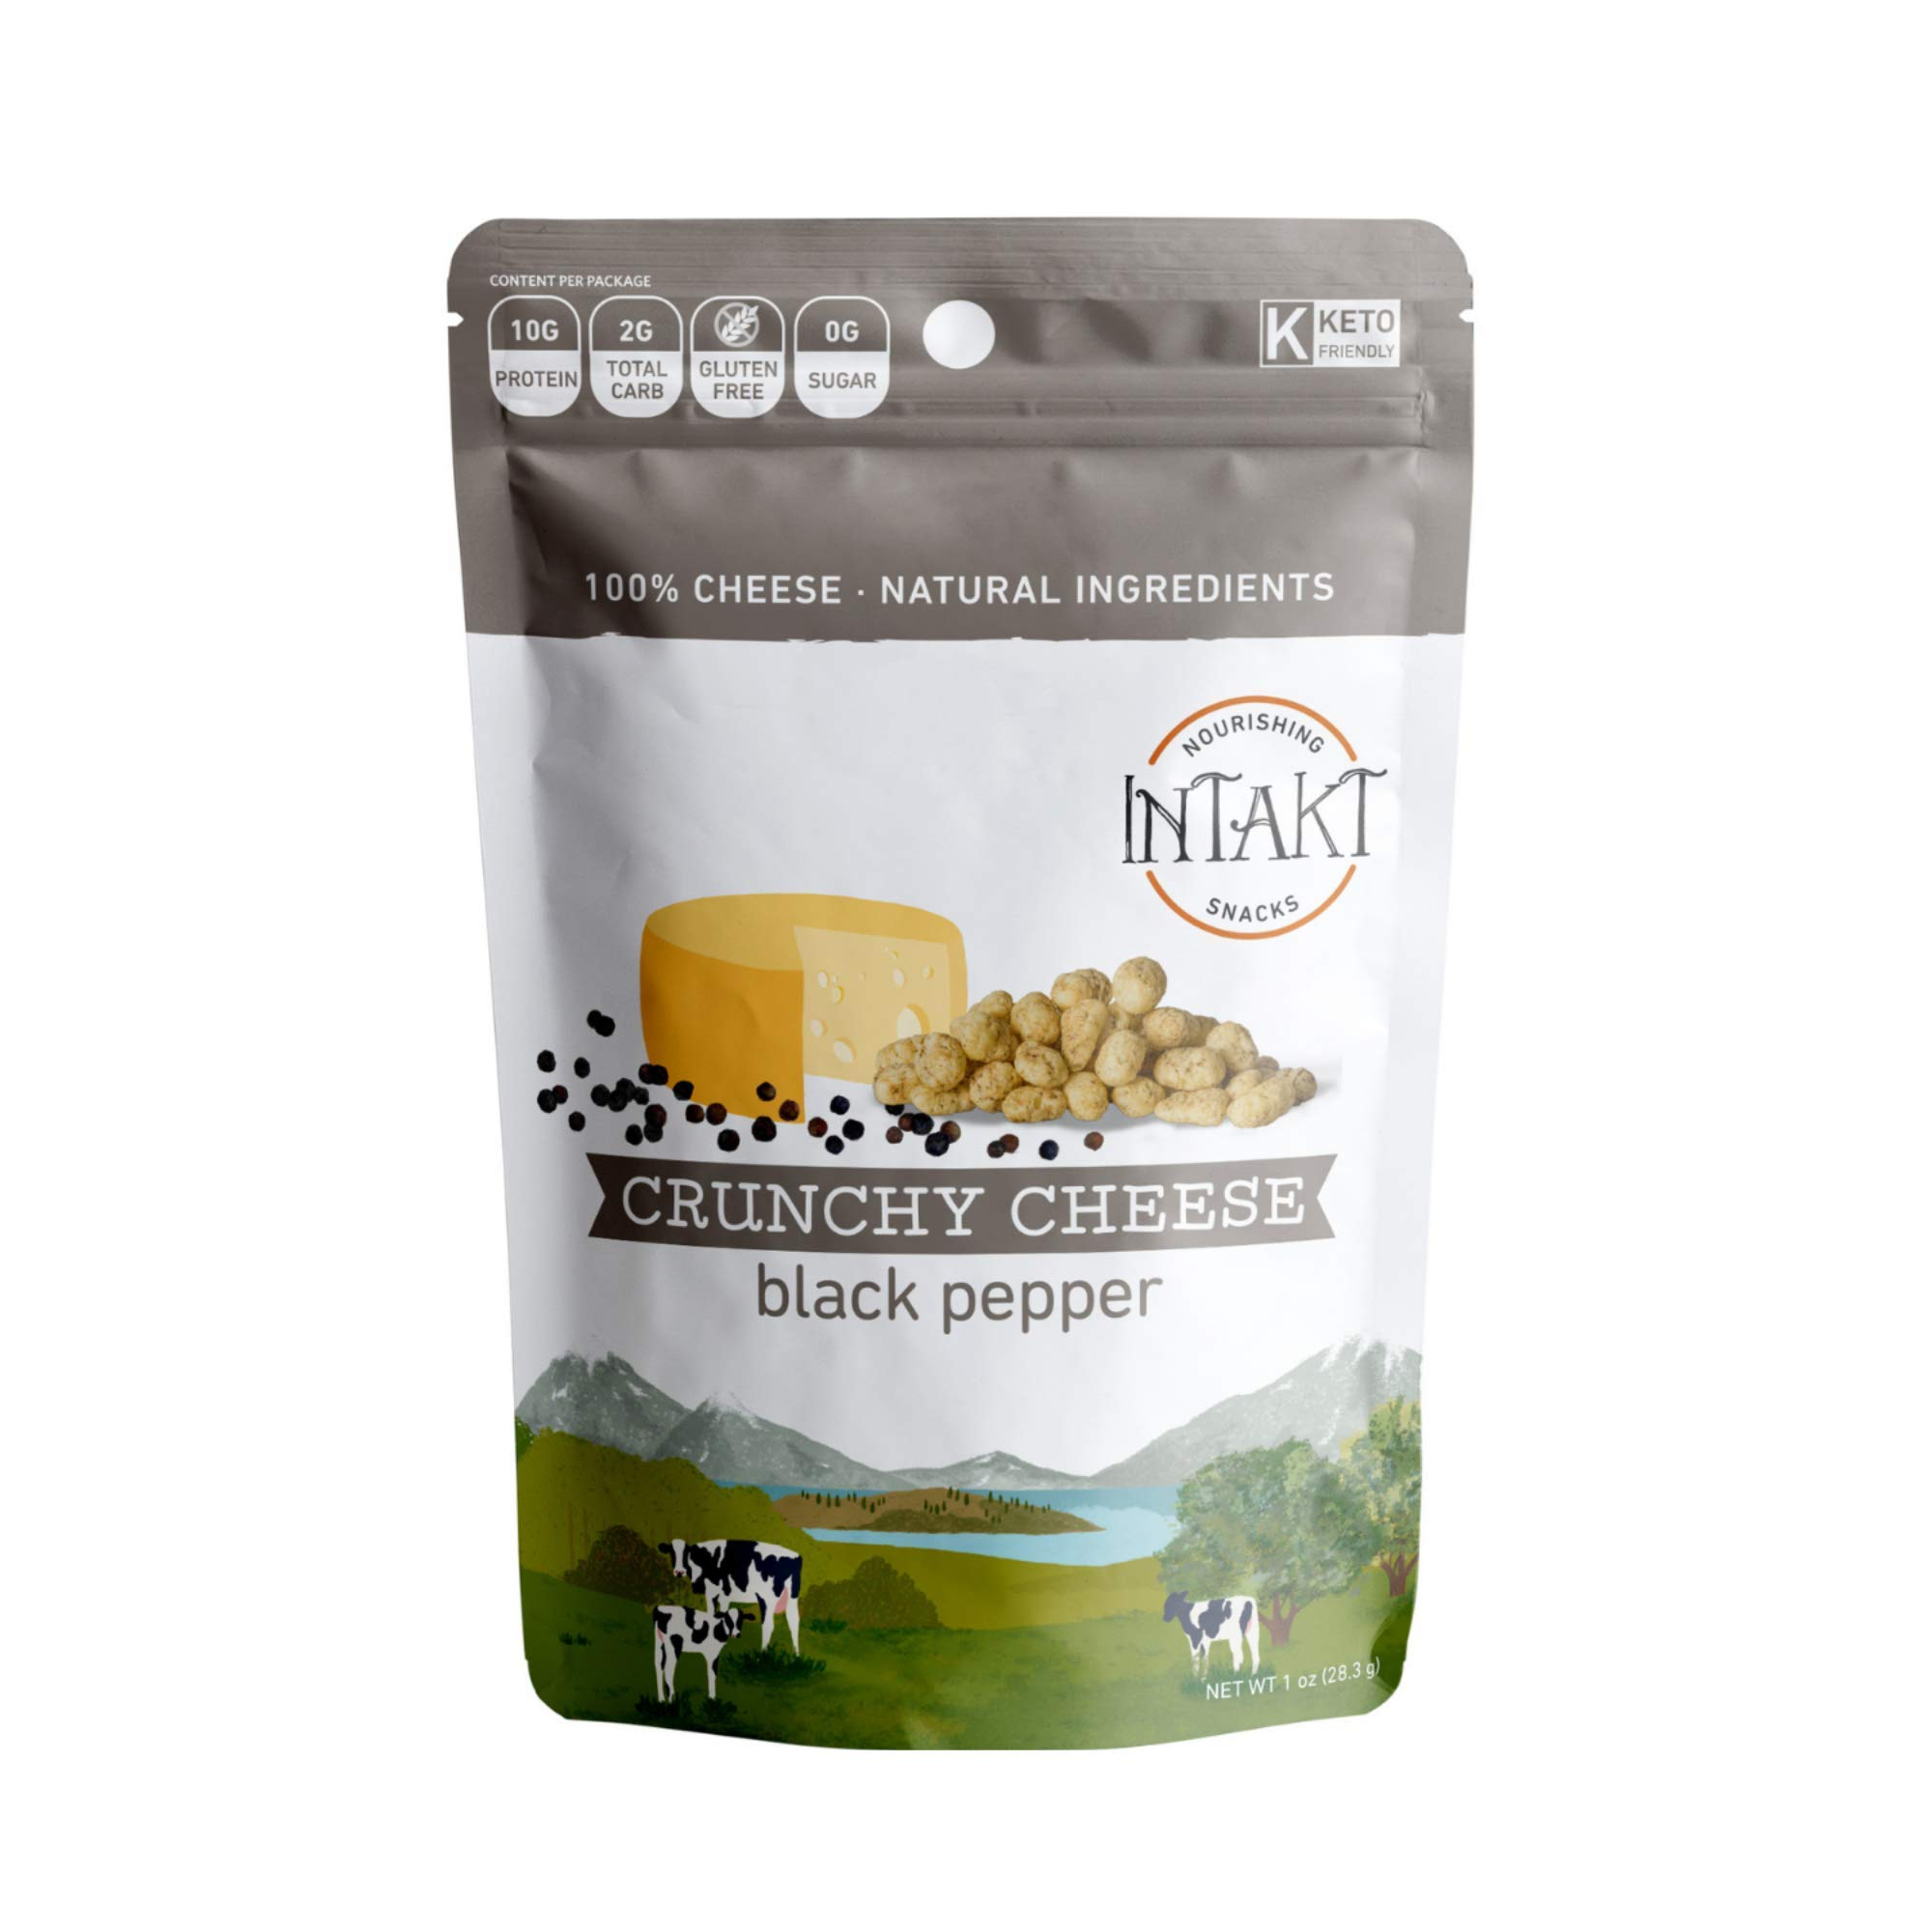 INTAKT Crunchy Cheese Crisps Keto Snacks | 4 Pack | Black Pepper | 100% Natural Cheese, High Protein Bites, Low Carb Snack Bites, Gluten Free Snack Packs, Grain Free, Soy & Nut Free, Non GMO